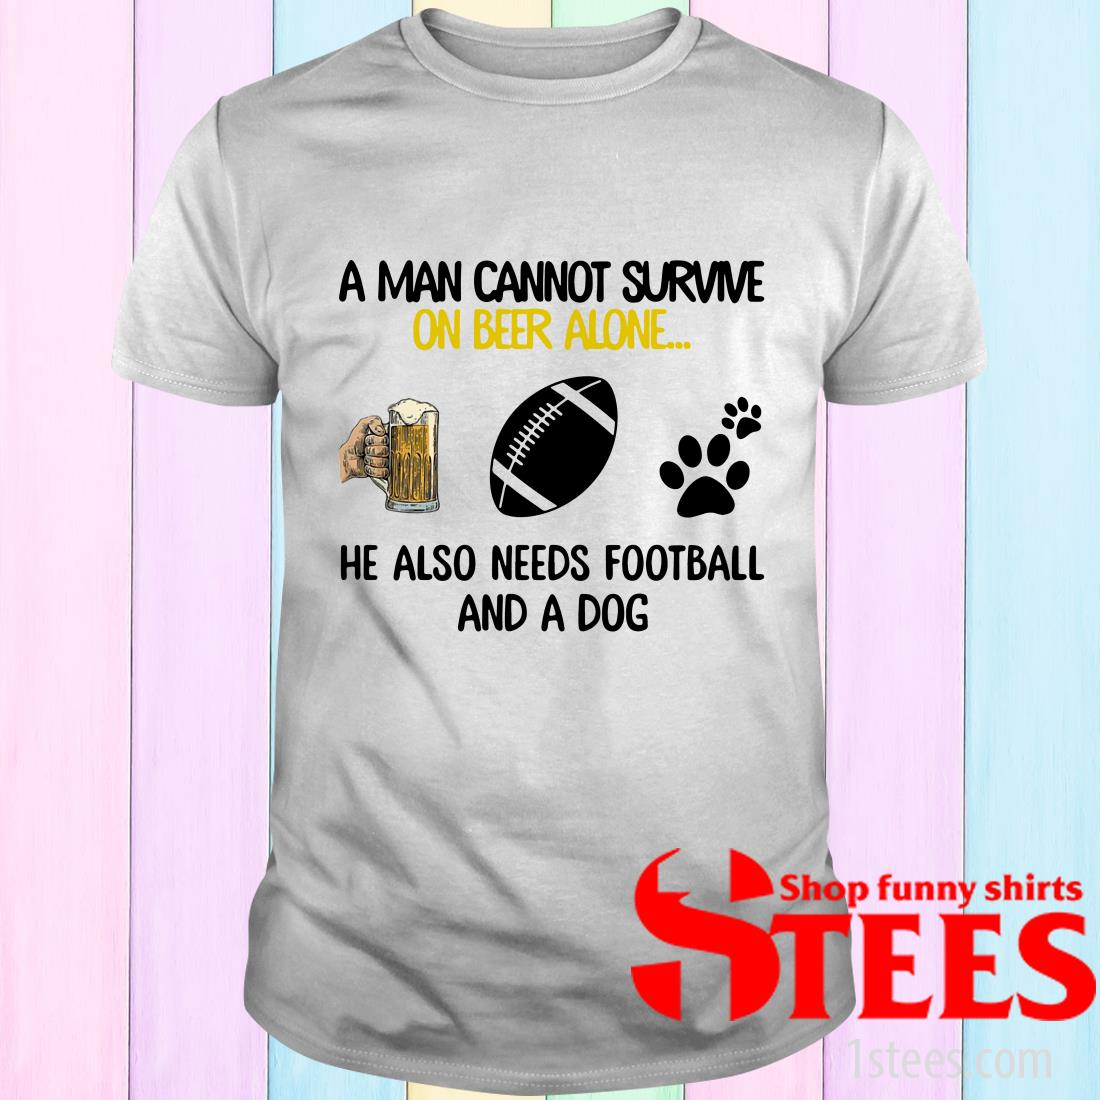 A Man Cannot Survive On Beer Alone He Also Needs Football And A Dog T-Shirt